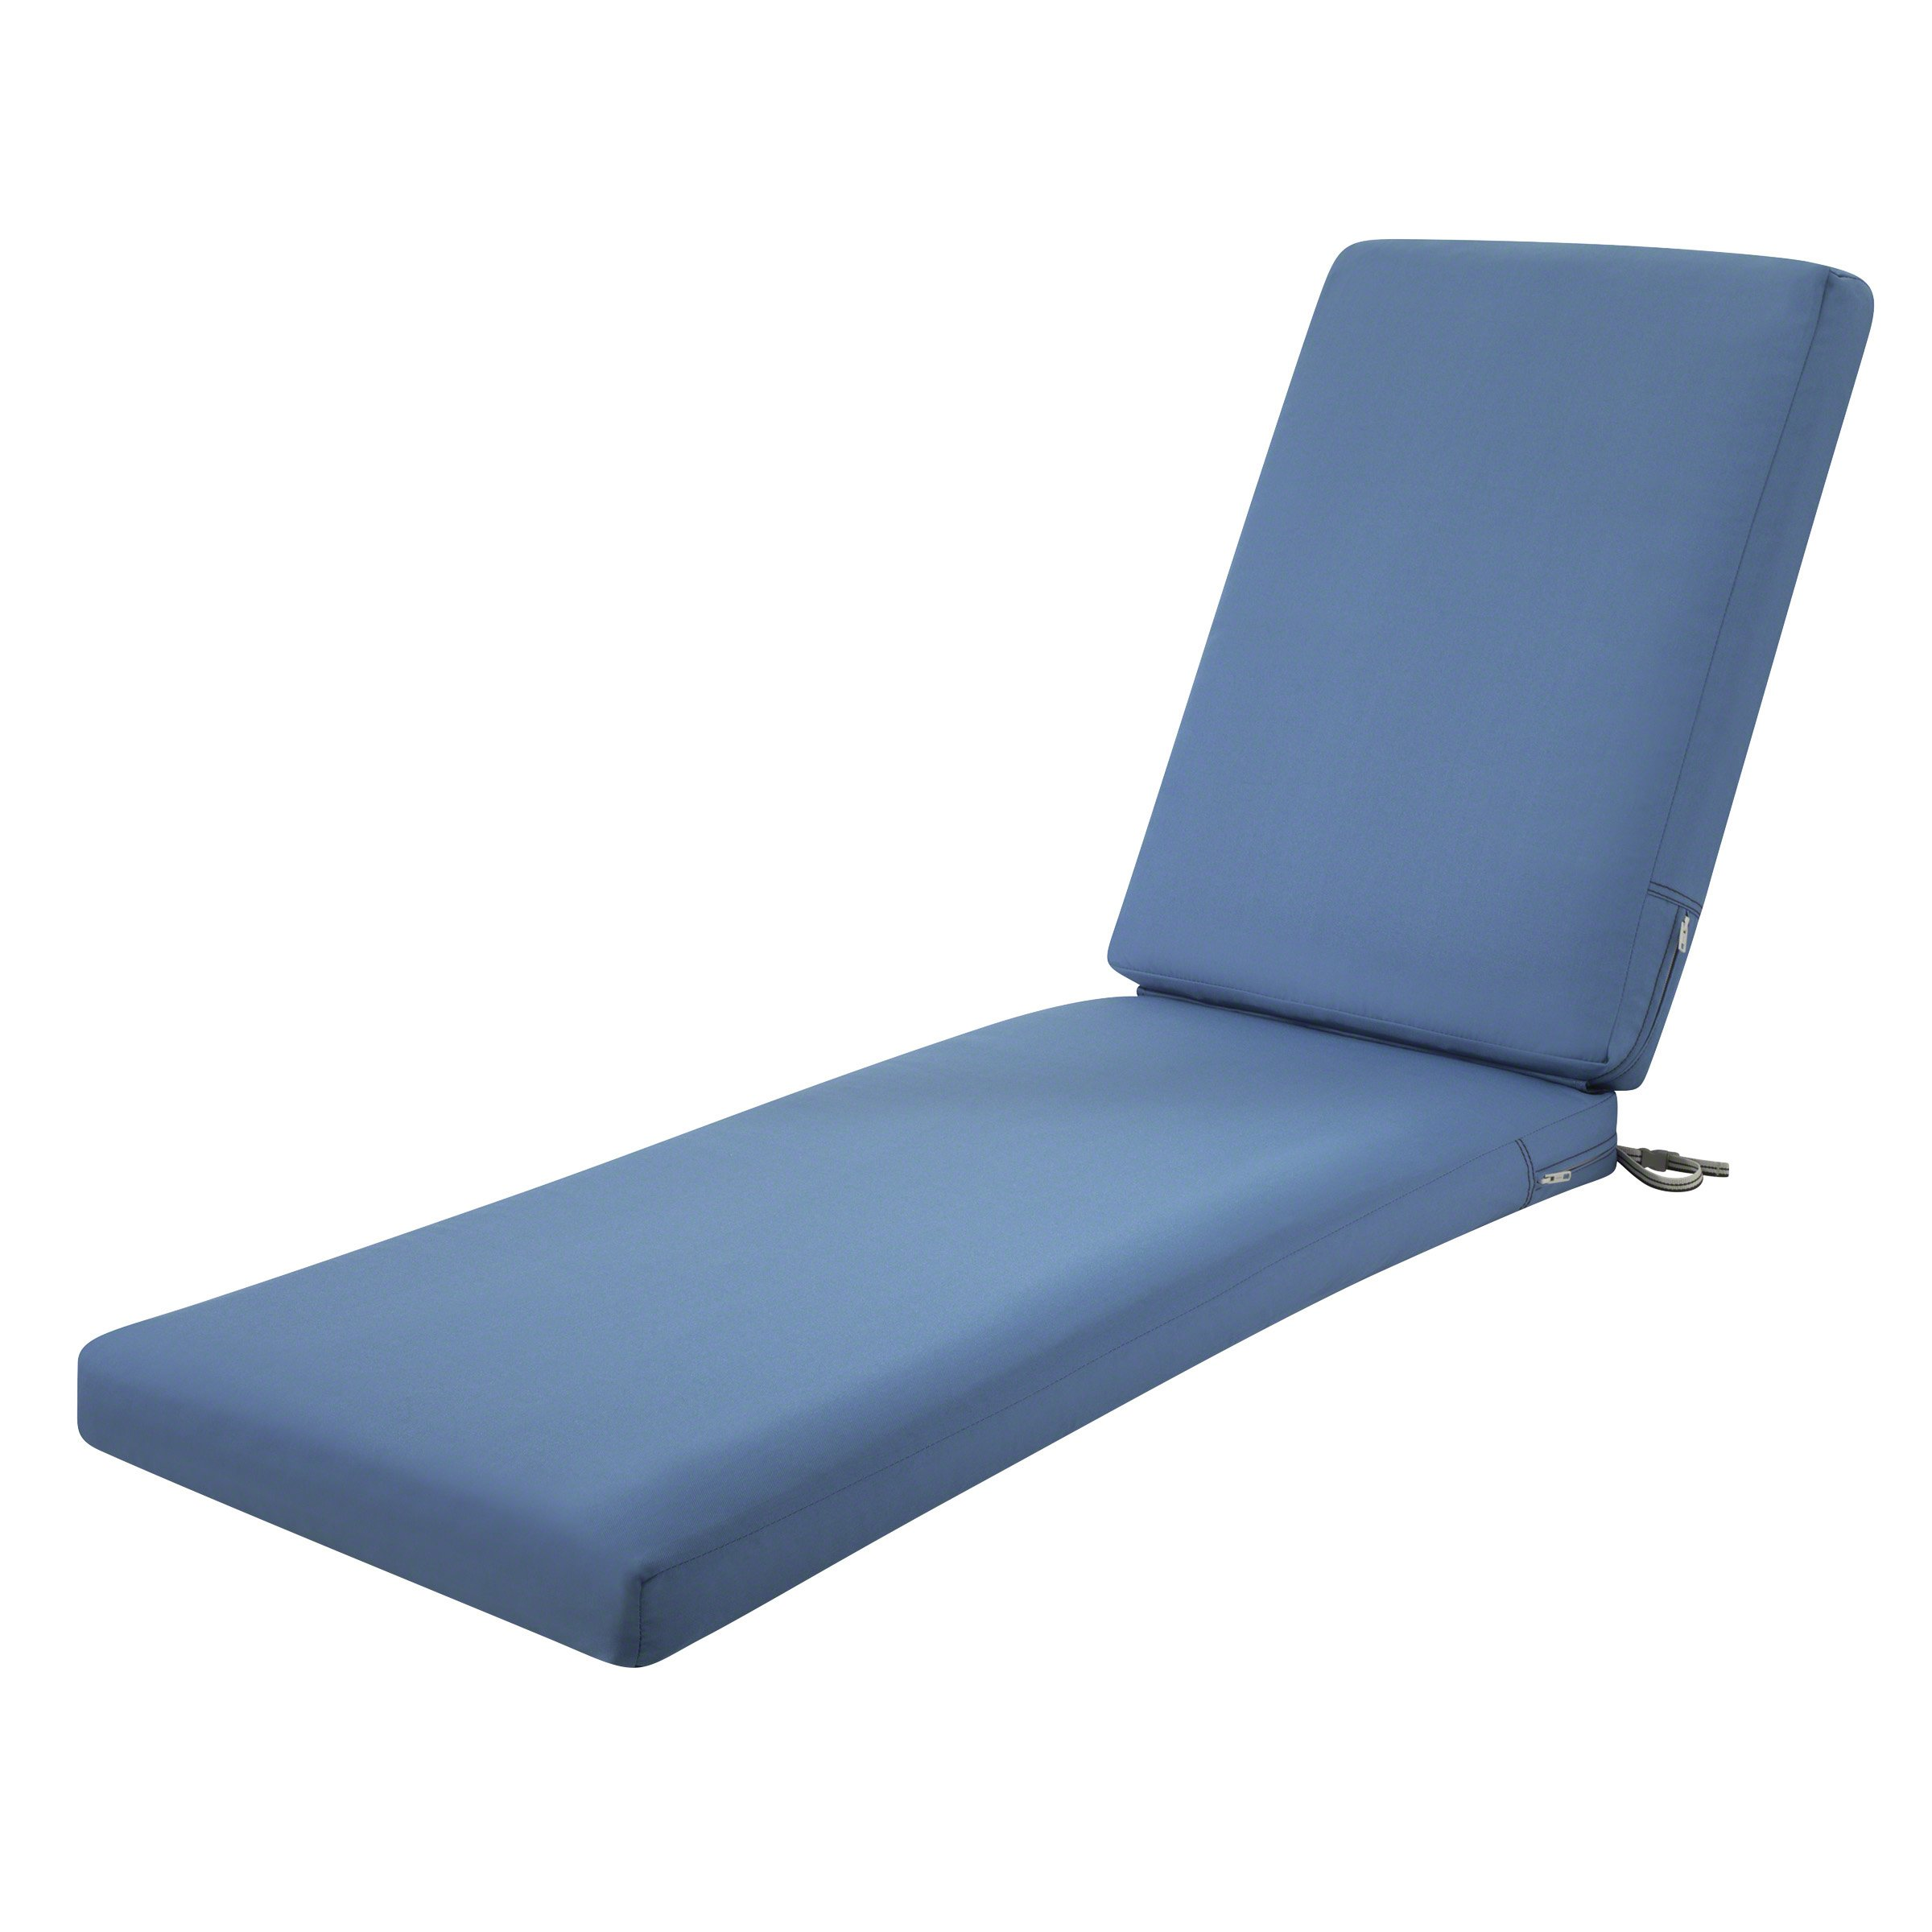 Classic Accessories Ravenna Outdoor Patio Chaise Lounge Cushion, Empire Blue, 72''L x 21''W x 3''T